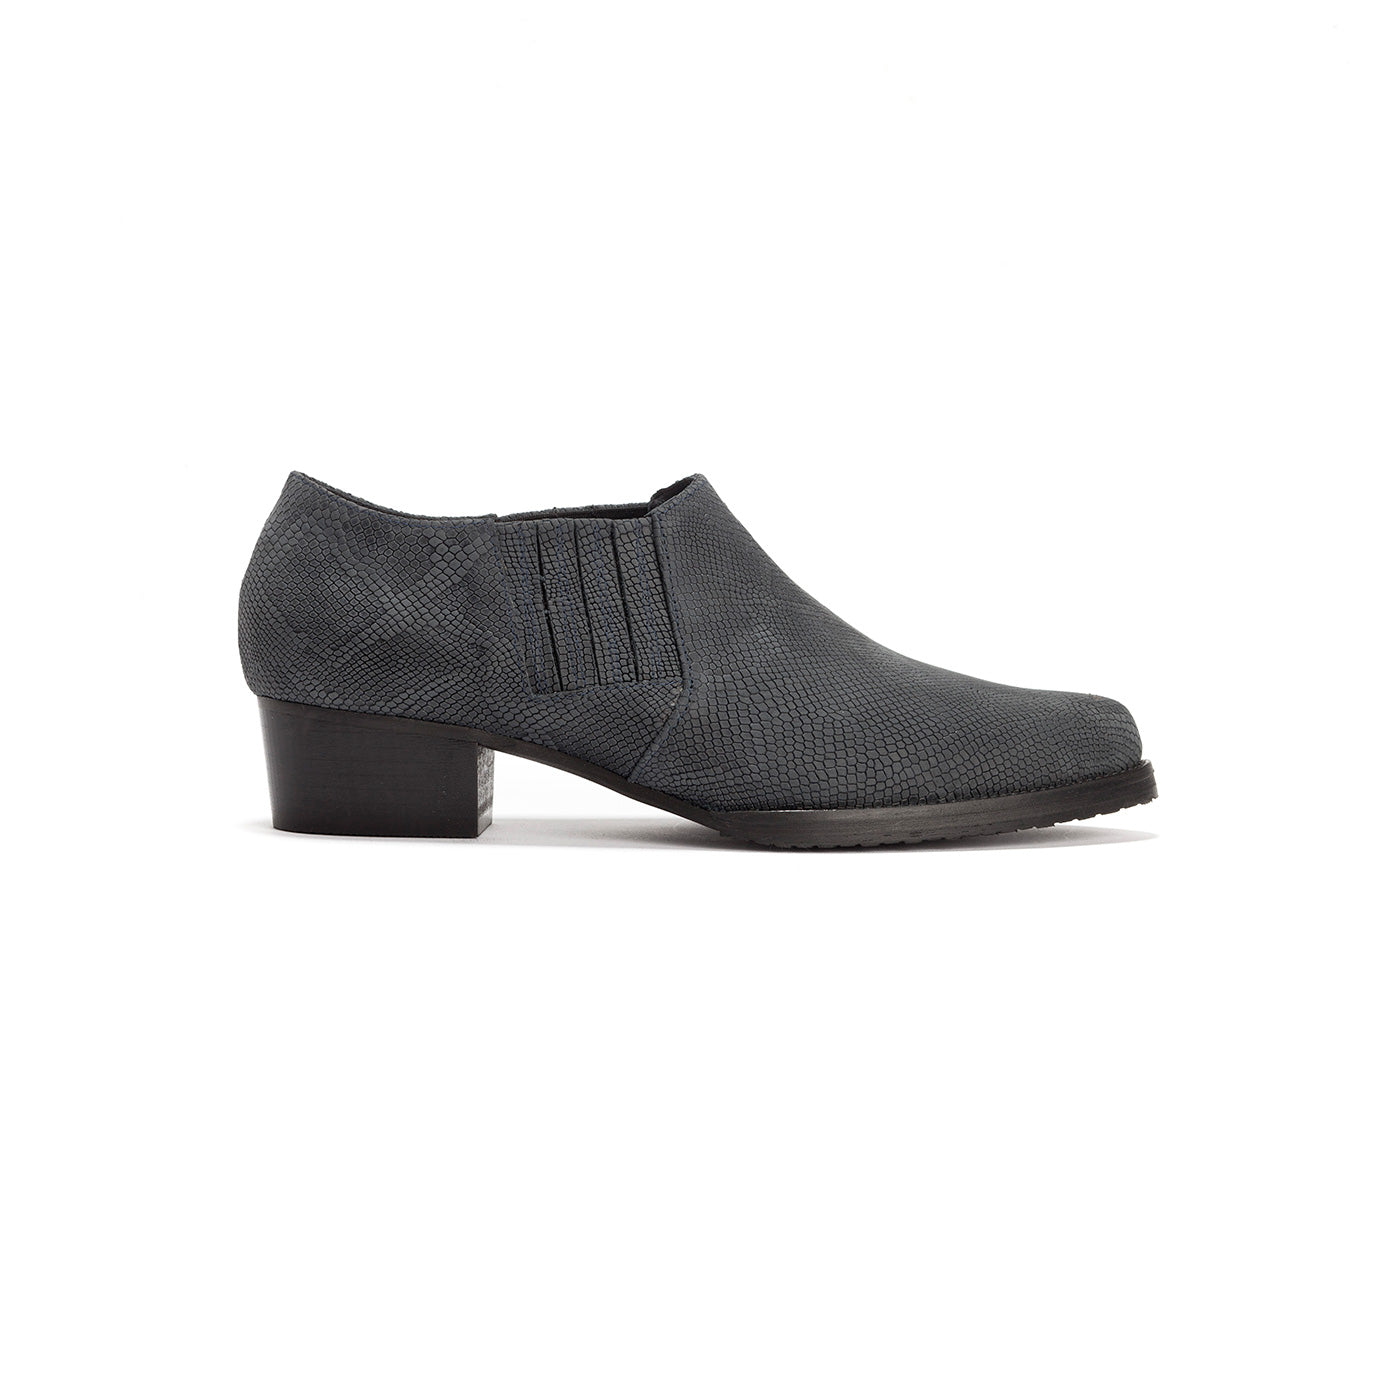 Sonya - Slip On Ankle Boots